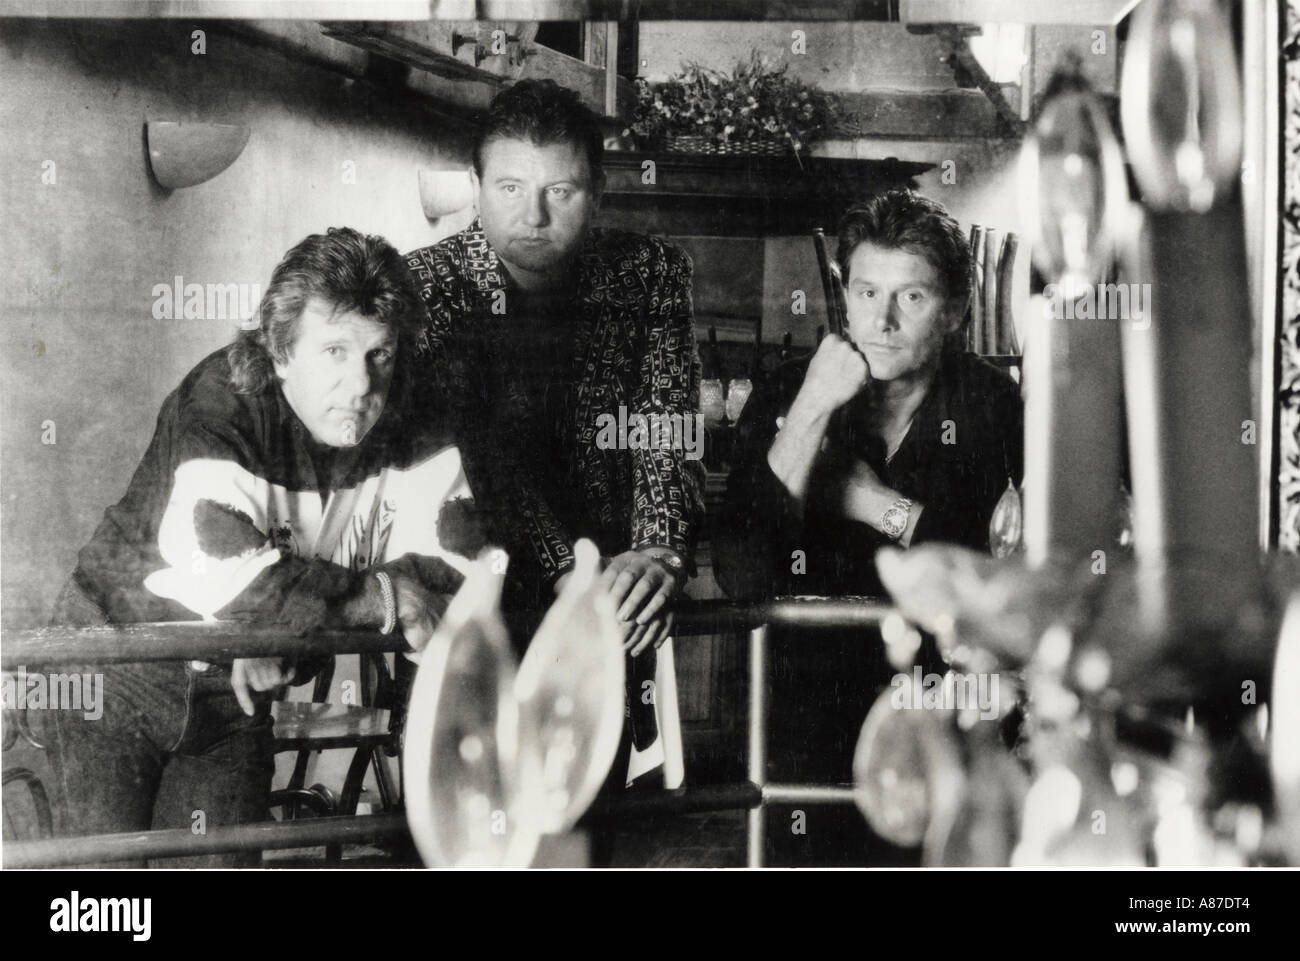 EMERSON LAKE AND PALMER  Promotional photo of UK rock group from left Keith Emerson, Greg Lake and Carl Palmer about 1980 - Stock Image